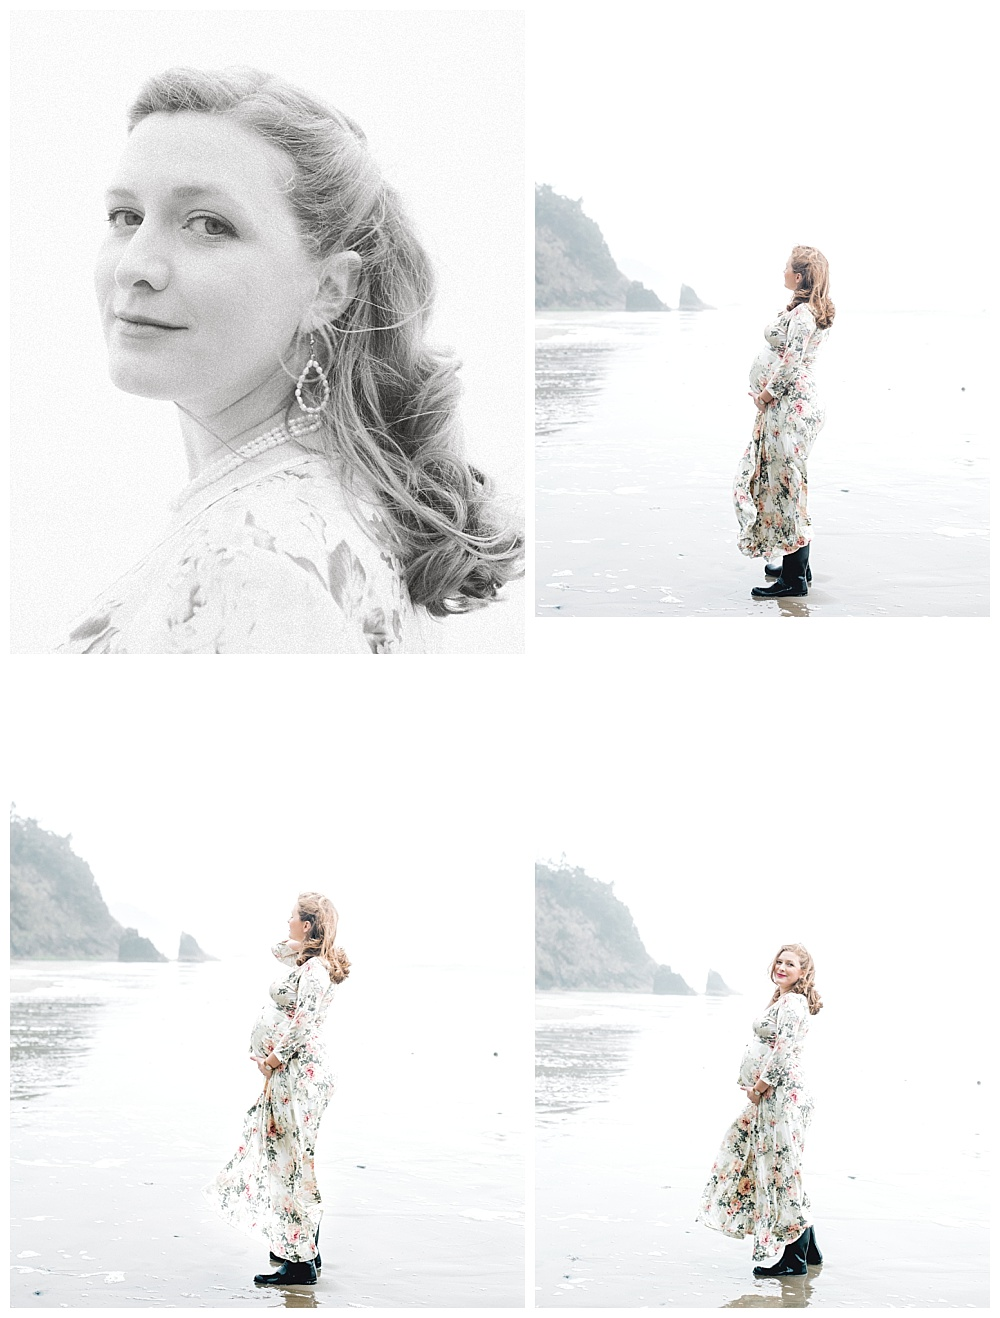 soft maternity portraits on oregon coast near hug point, series of photos of mother fixing hair in wind and looking wistfully to rocks off the shore